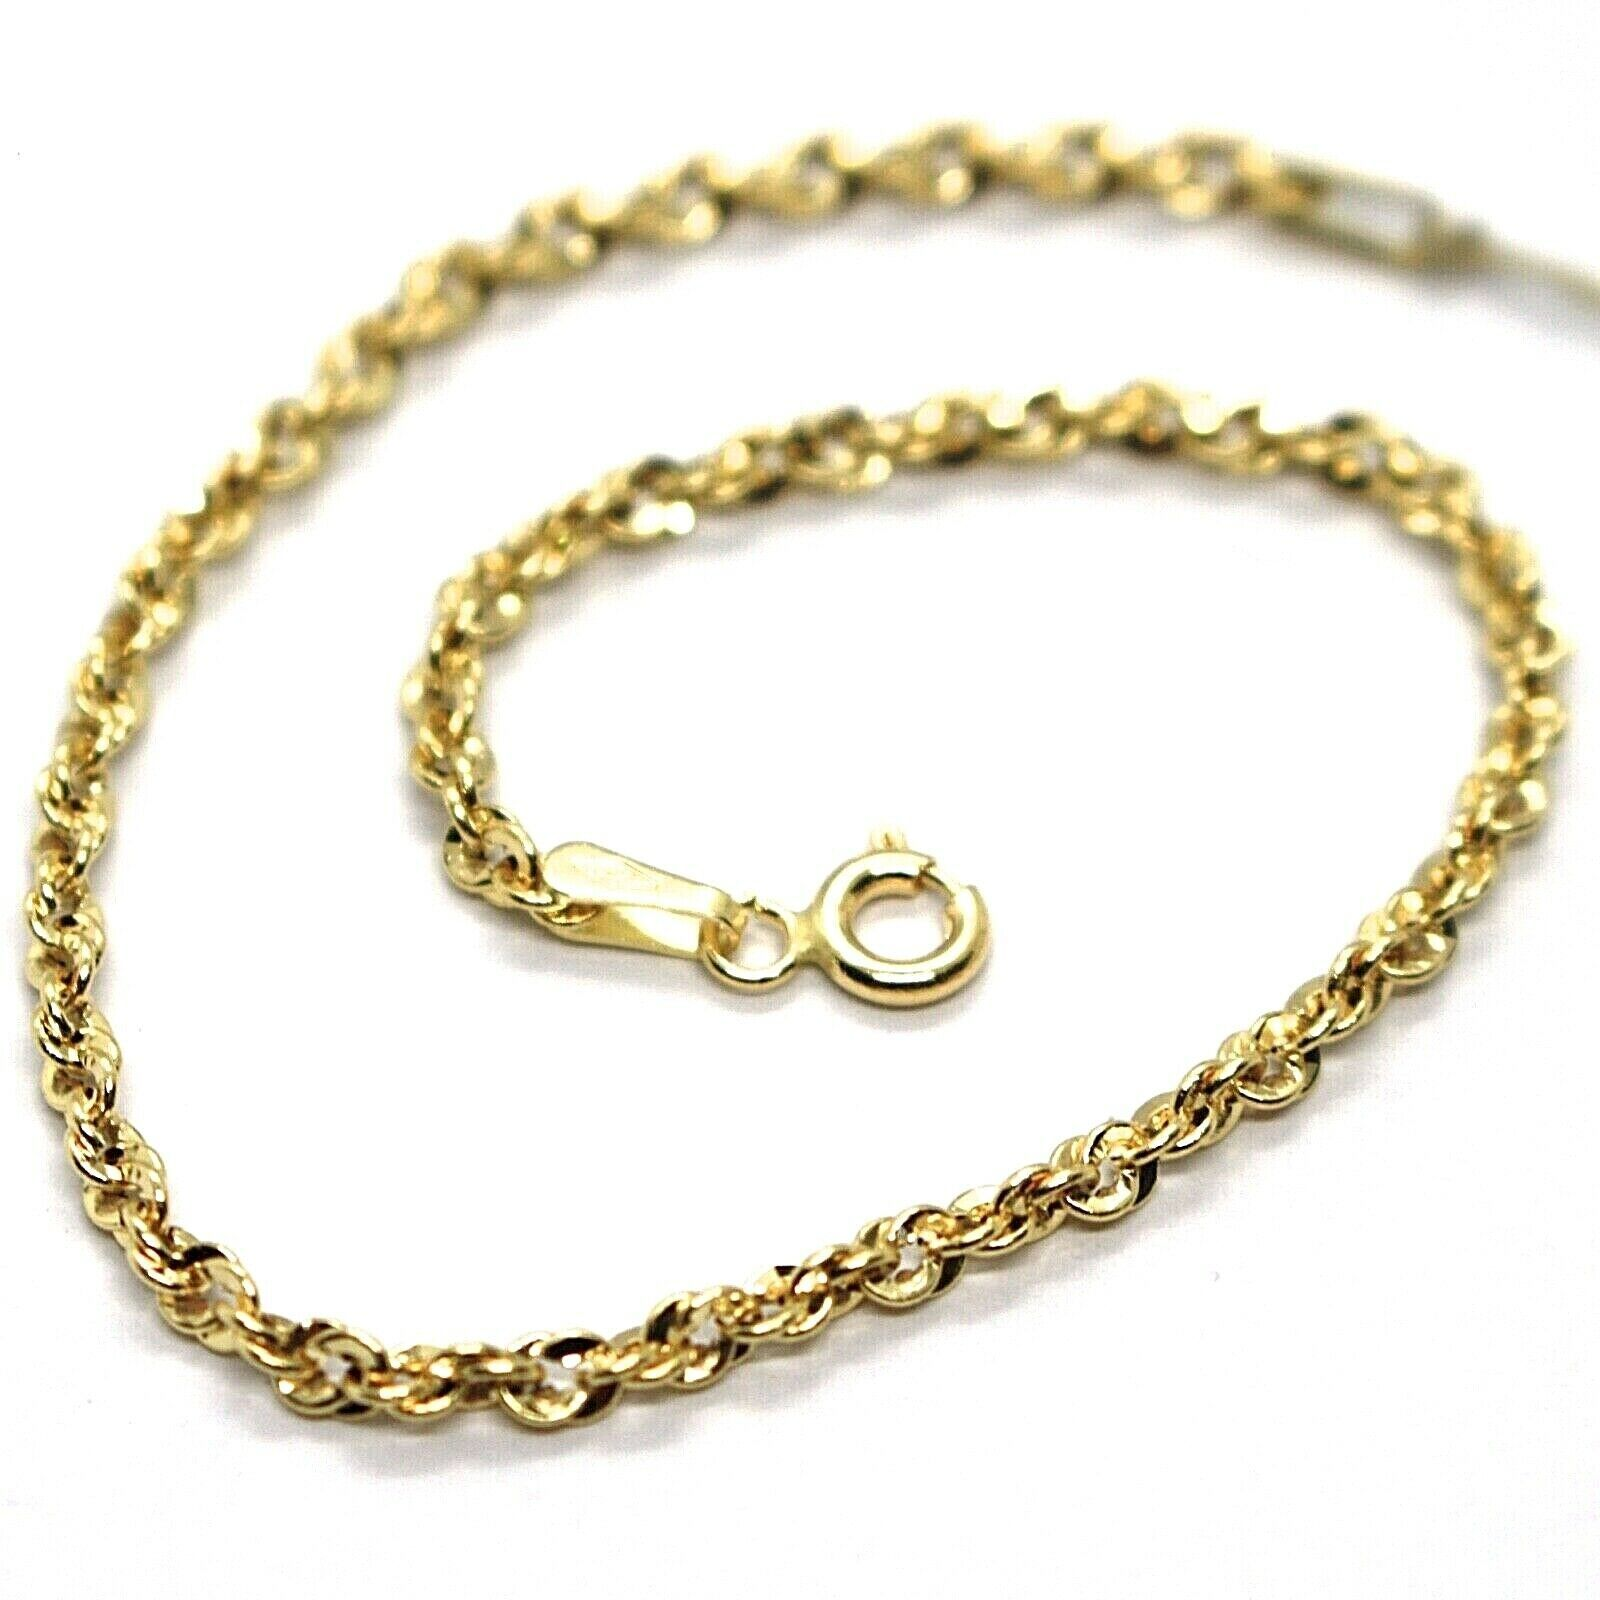 18K YELLOW GOLD ROPE MINI BRACELET, 7.1 INCHES, BRAIDED INFINITE FACETED LINK